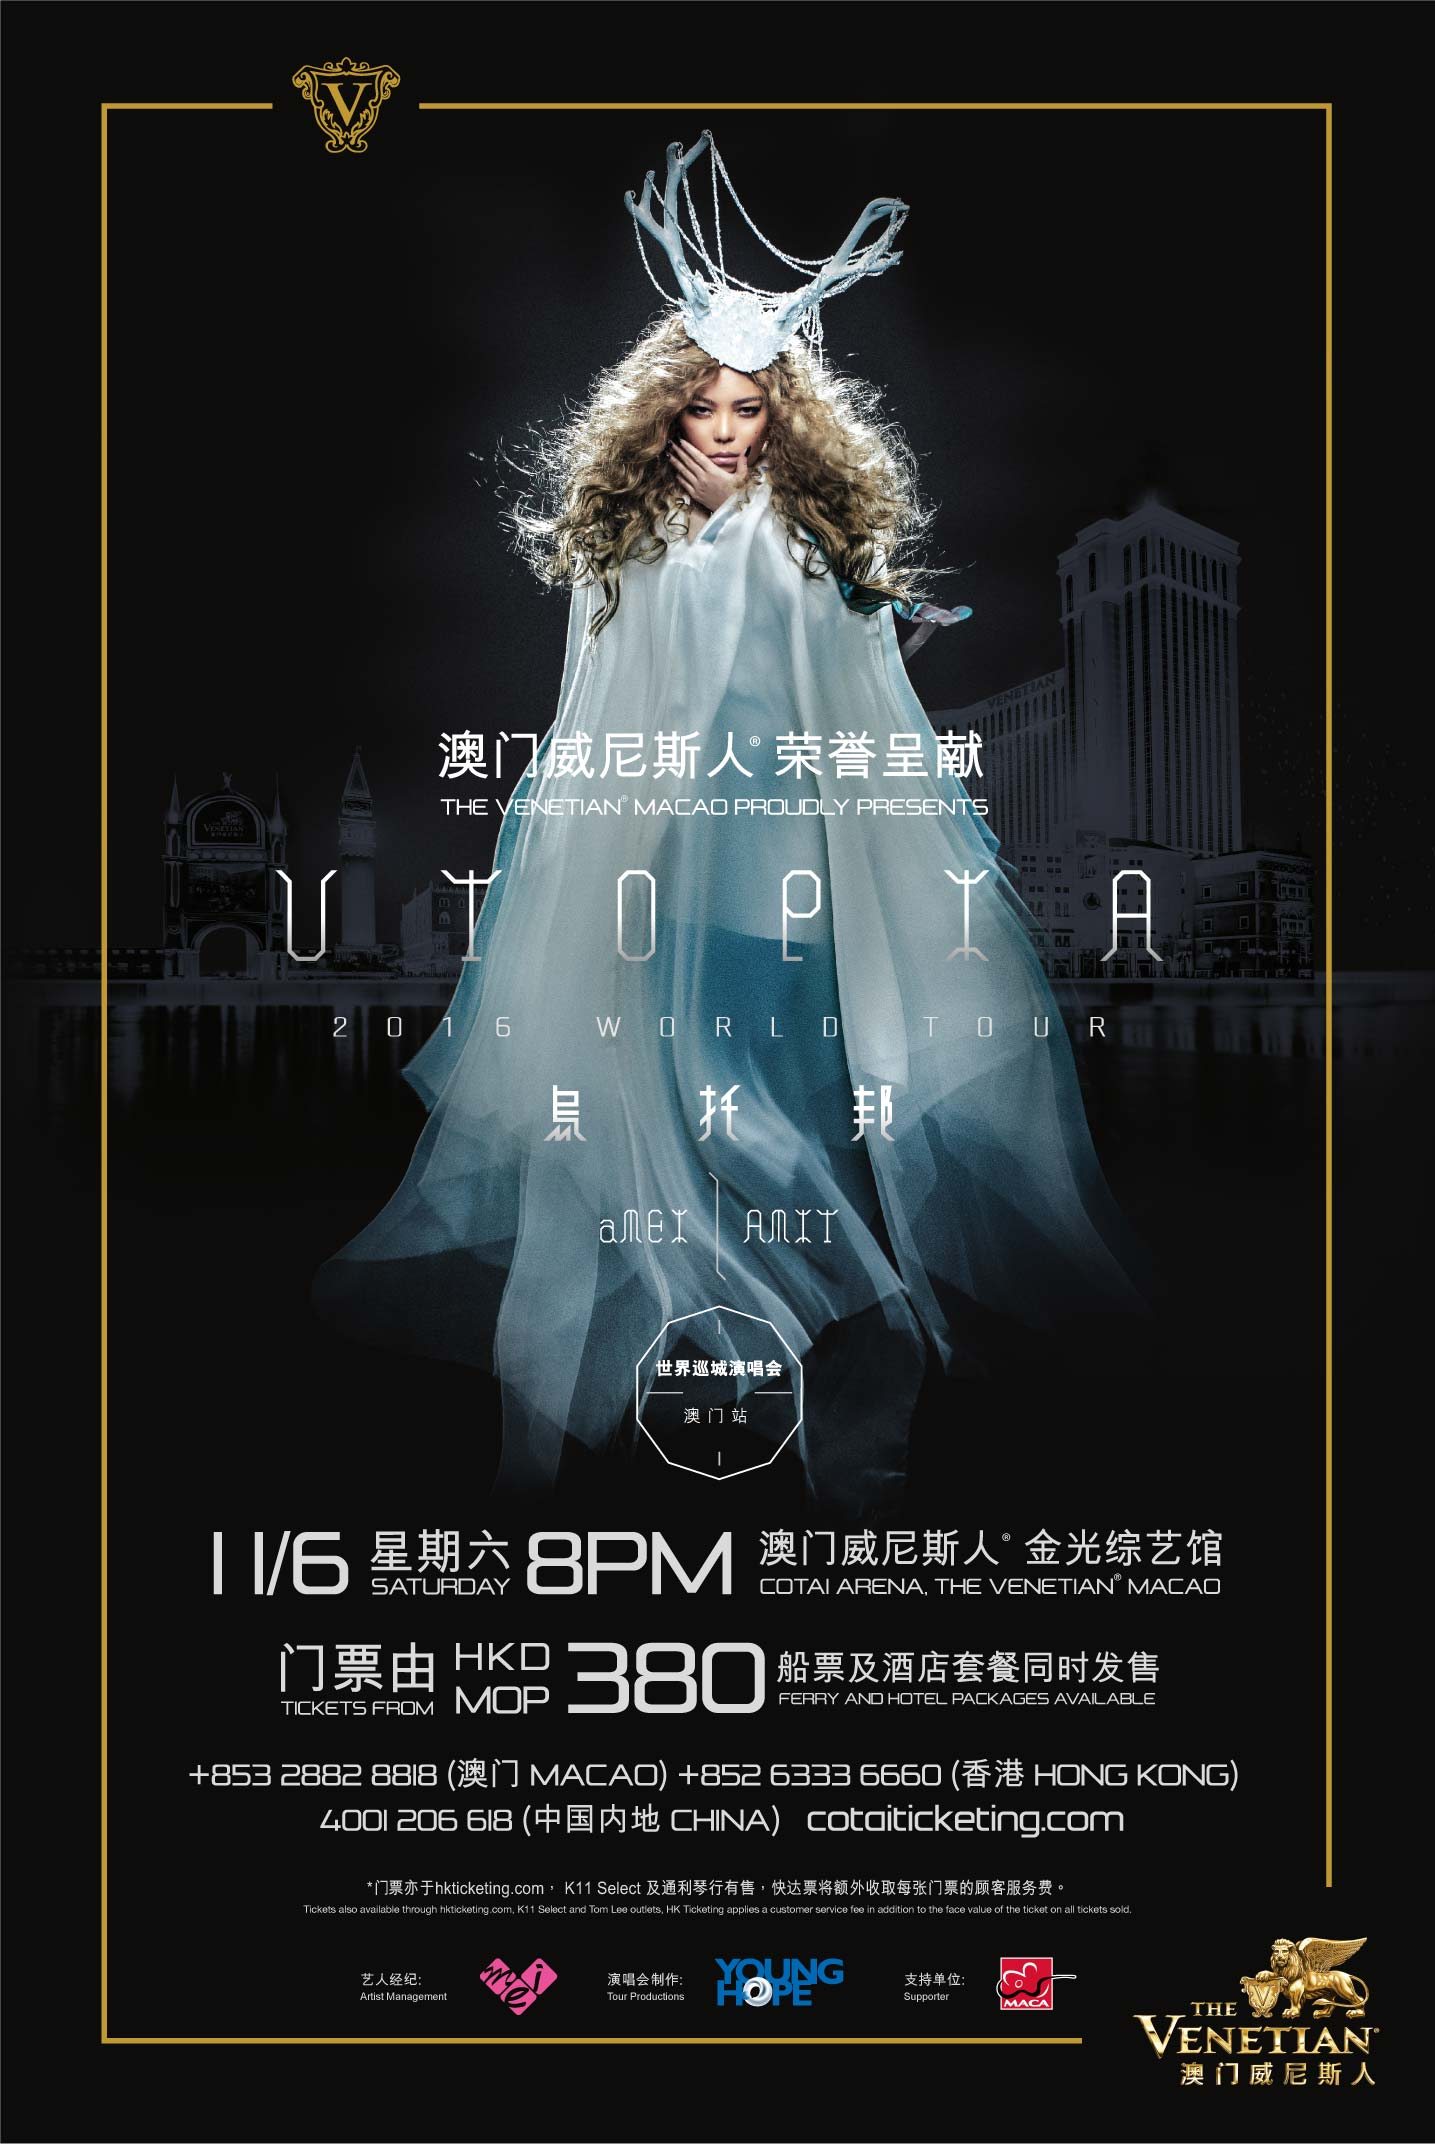 Mandopop Superstar Chang Hui Mei to Perform at The Venetian Macao